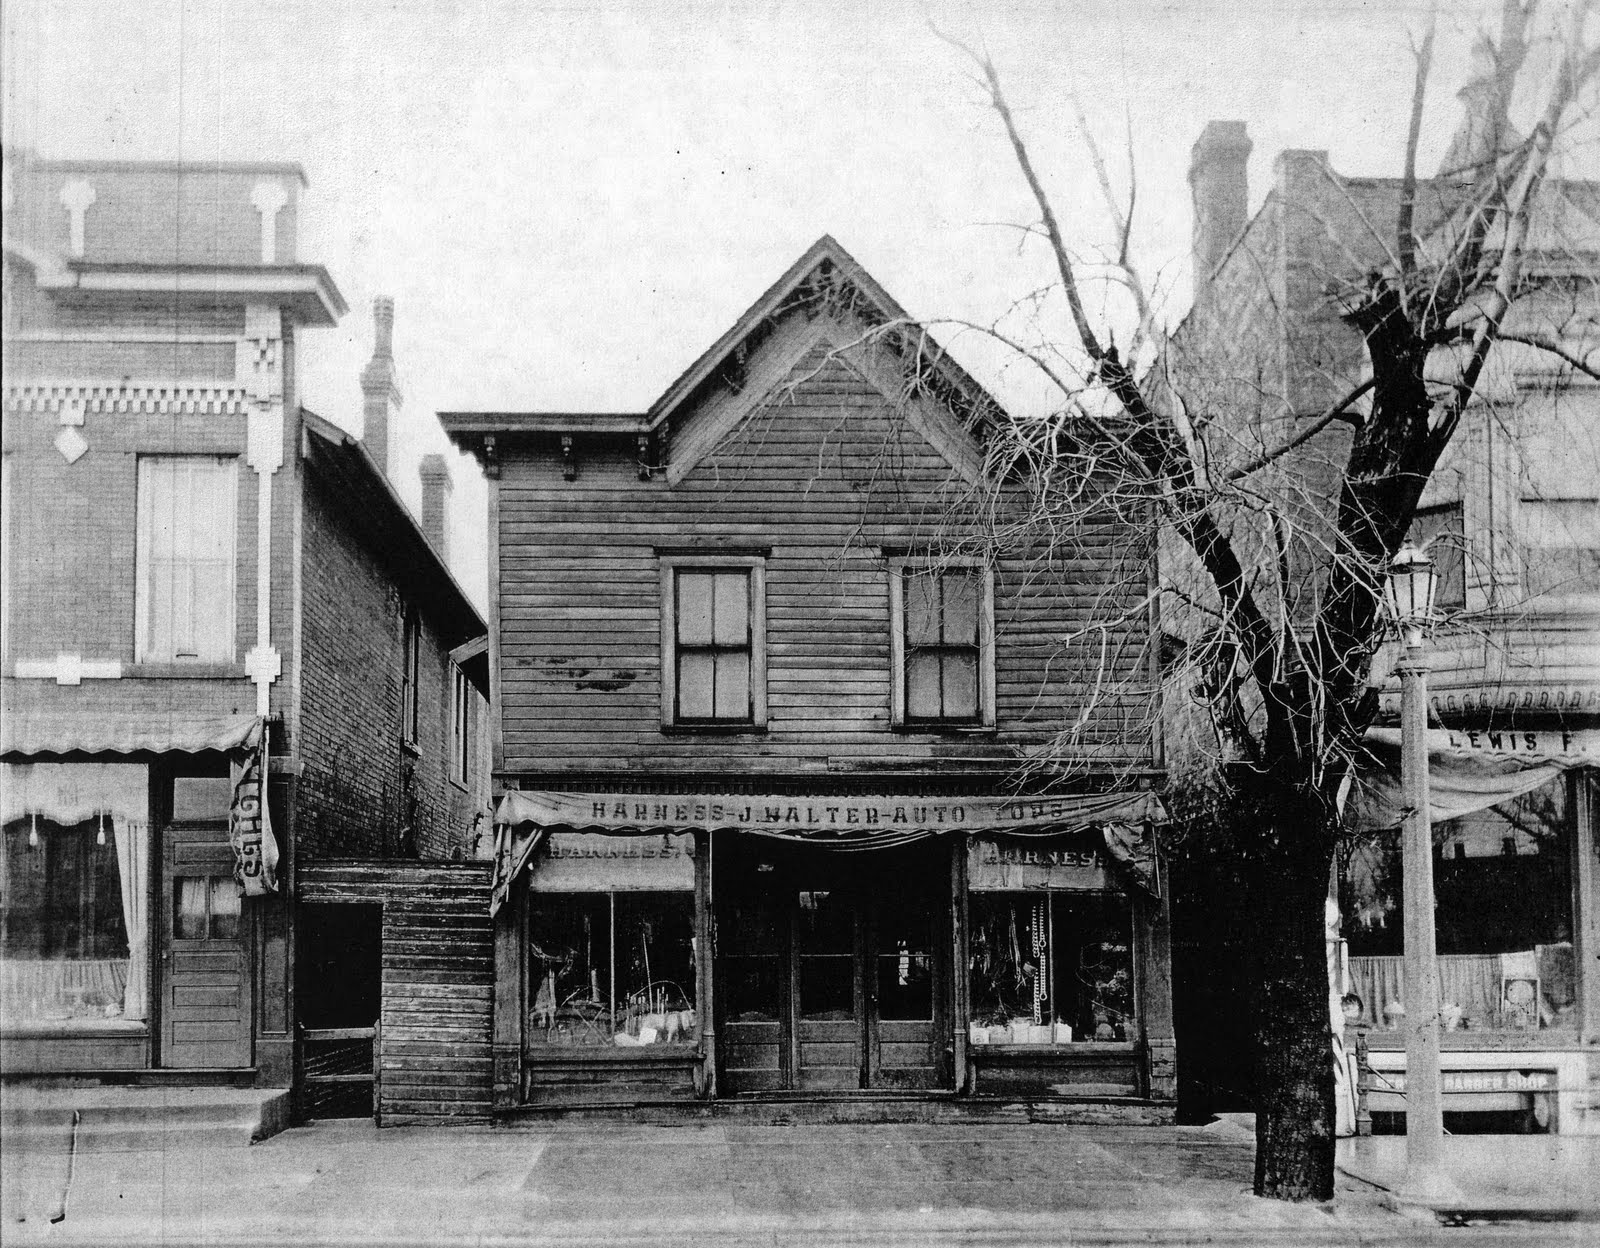 Old West False Front Buildings http://www.revitalizedesplaines.org/2010_03_01_archive.html